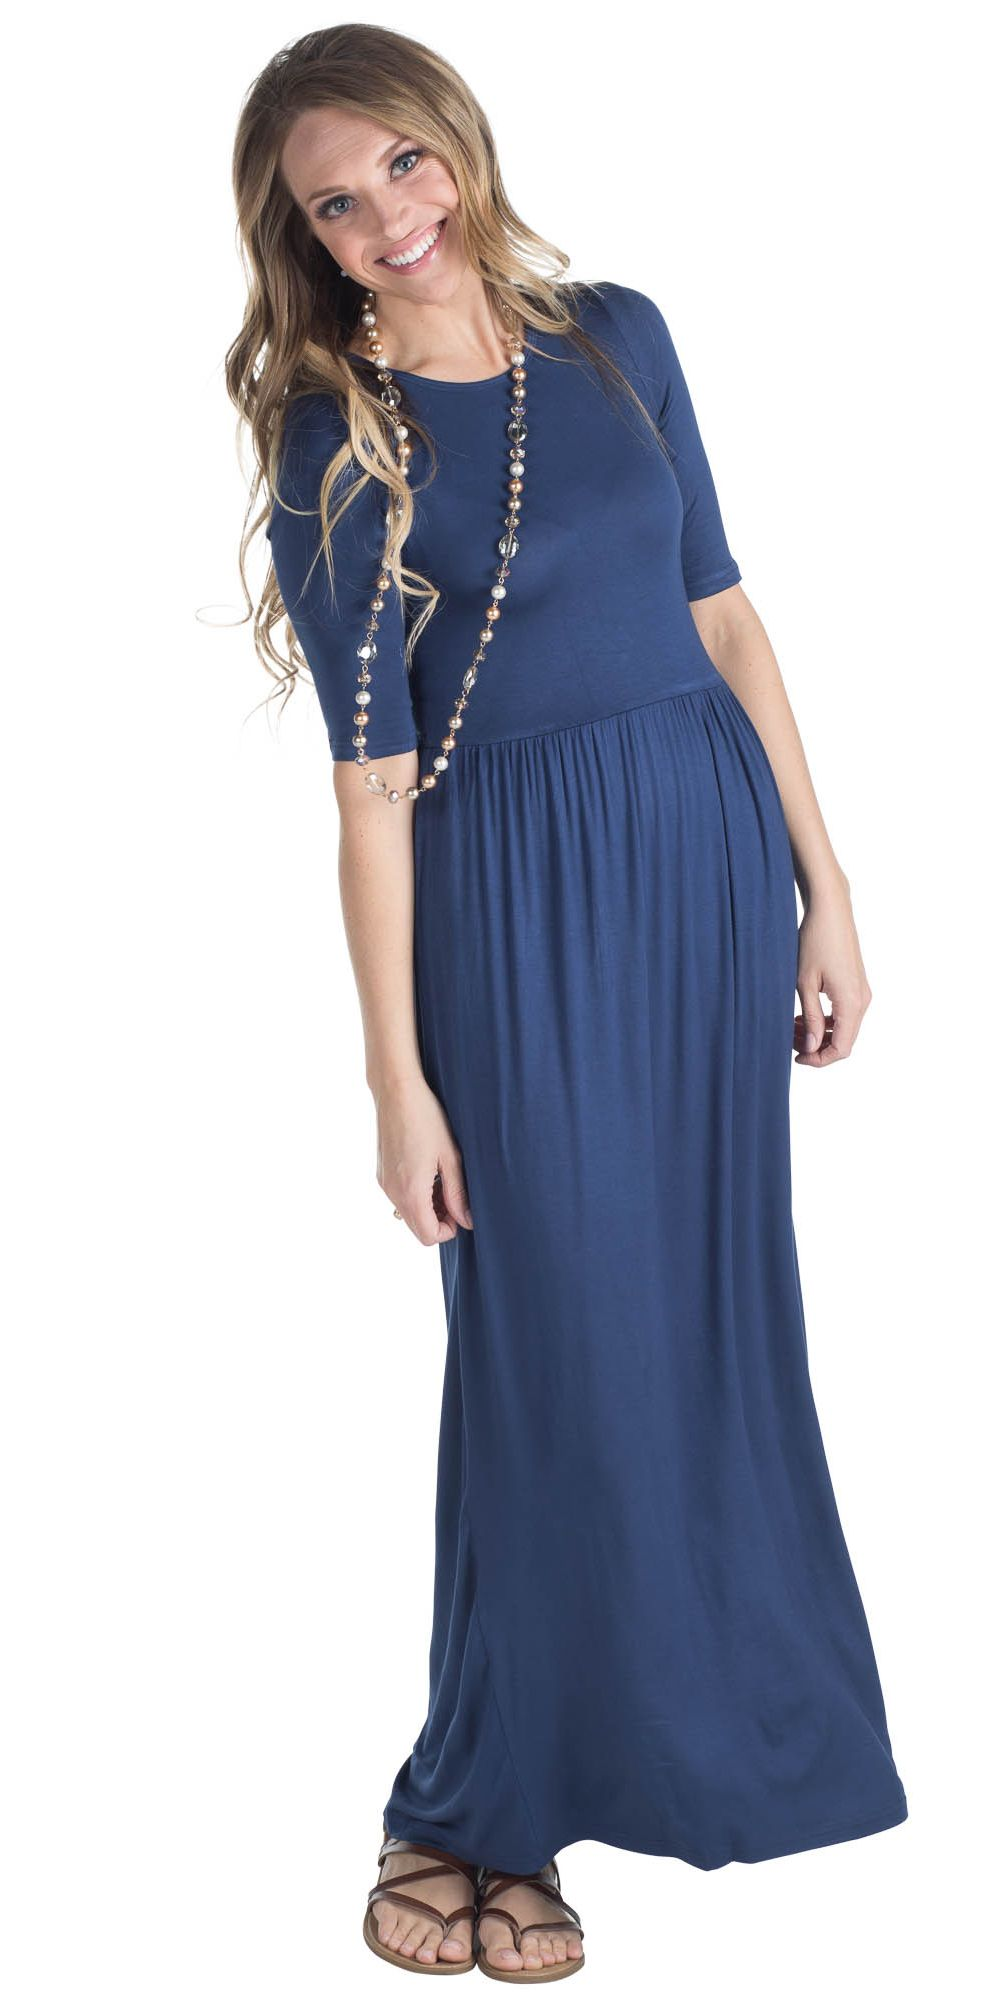 bb0111e373 Jen Modest Maxi Dress with Half Sleeves in Navy Blue